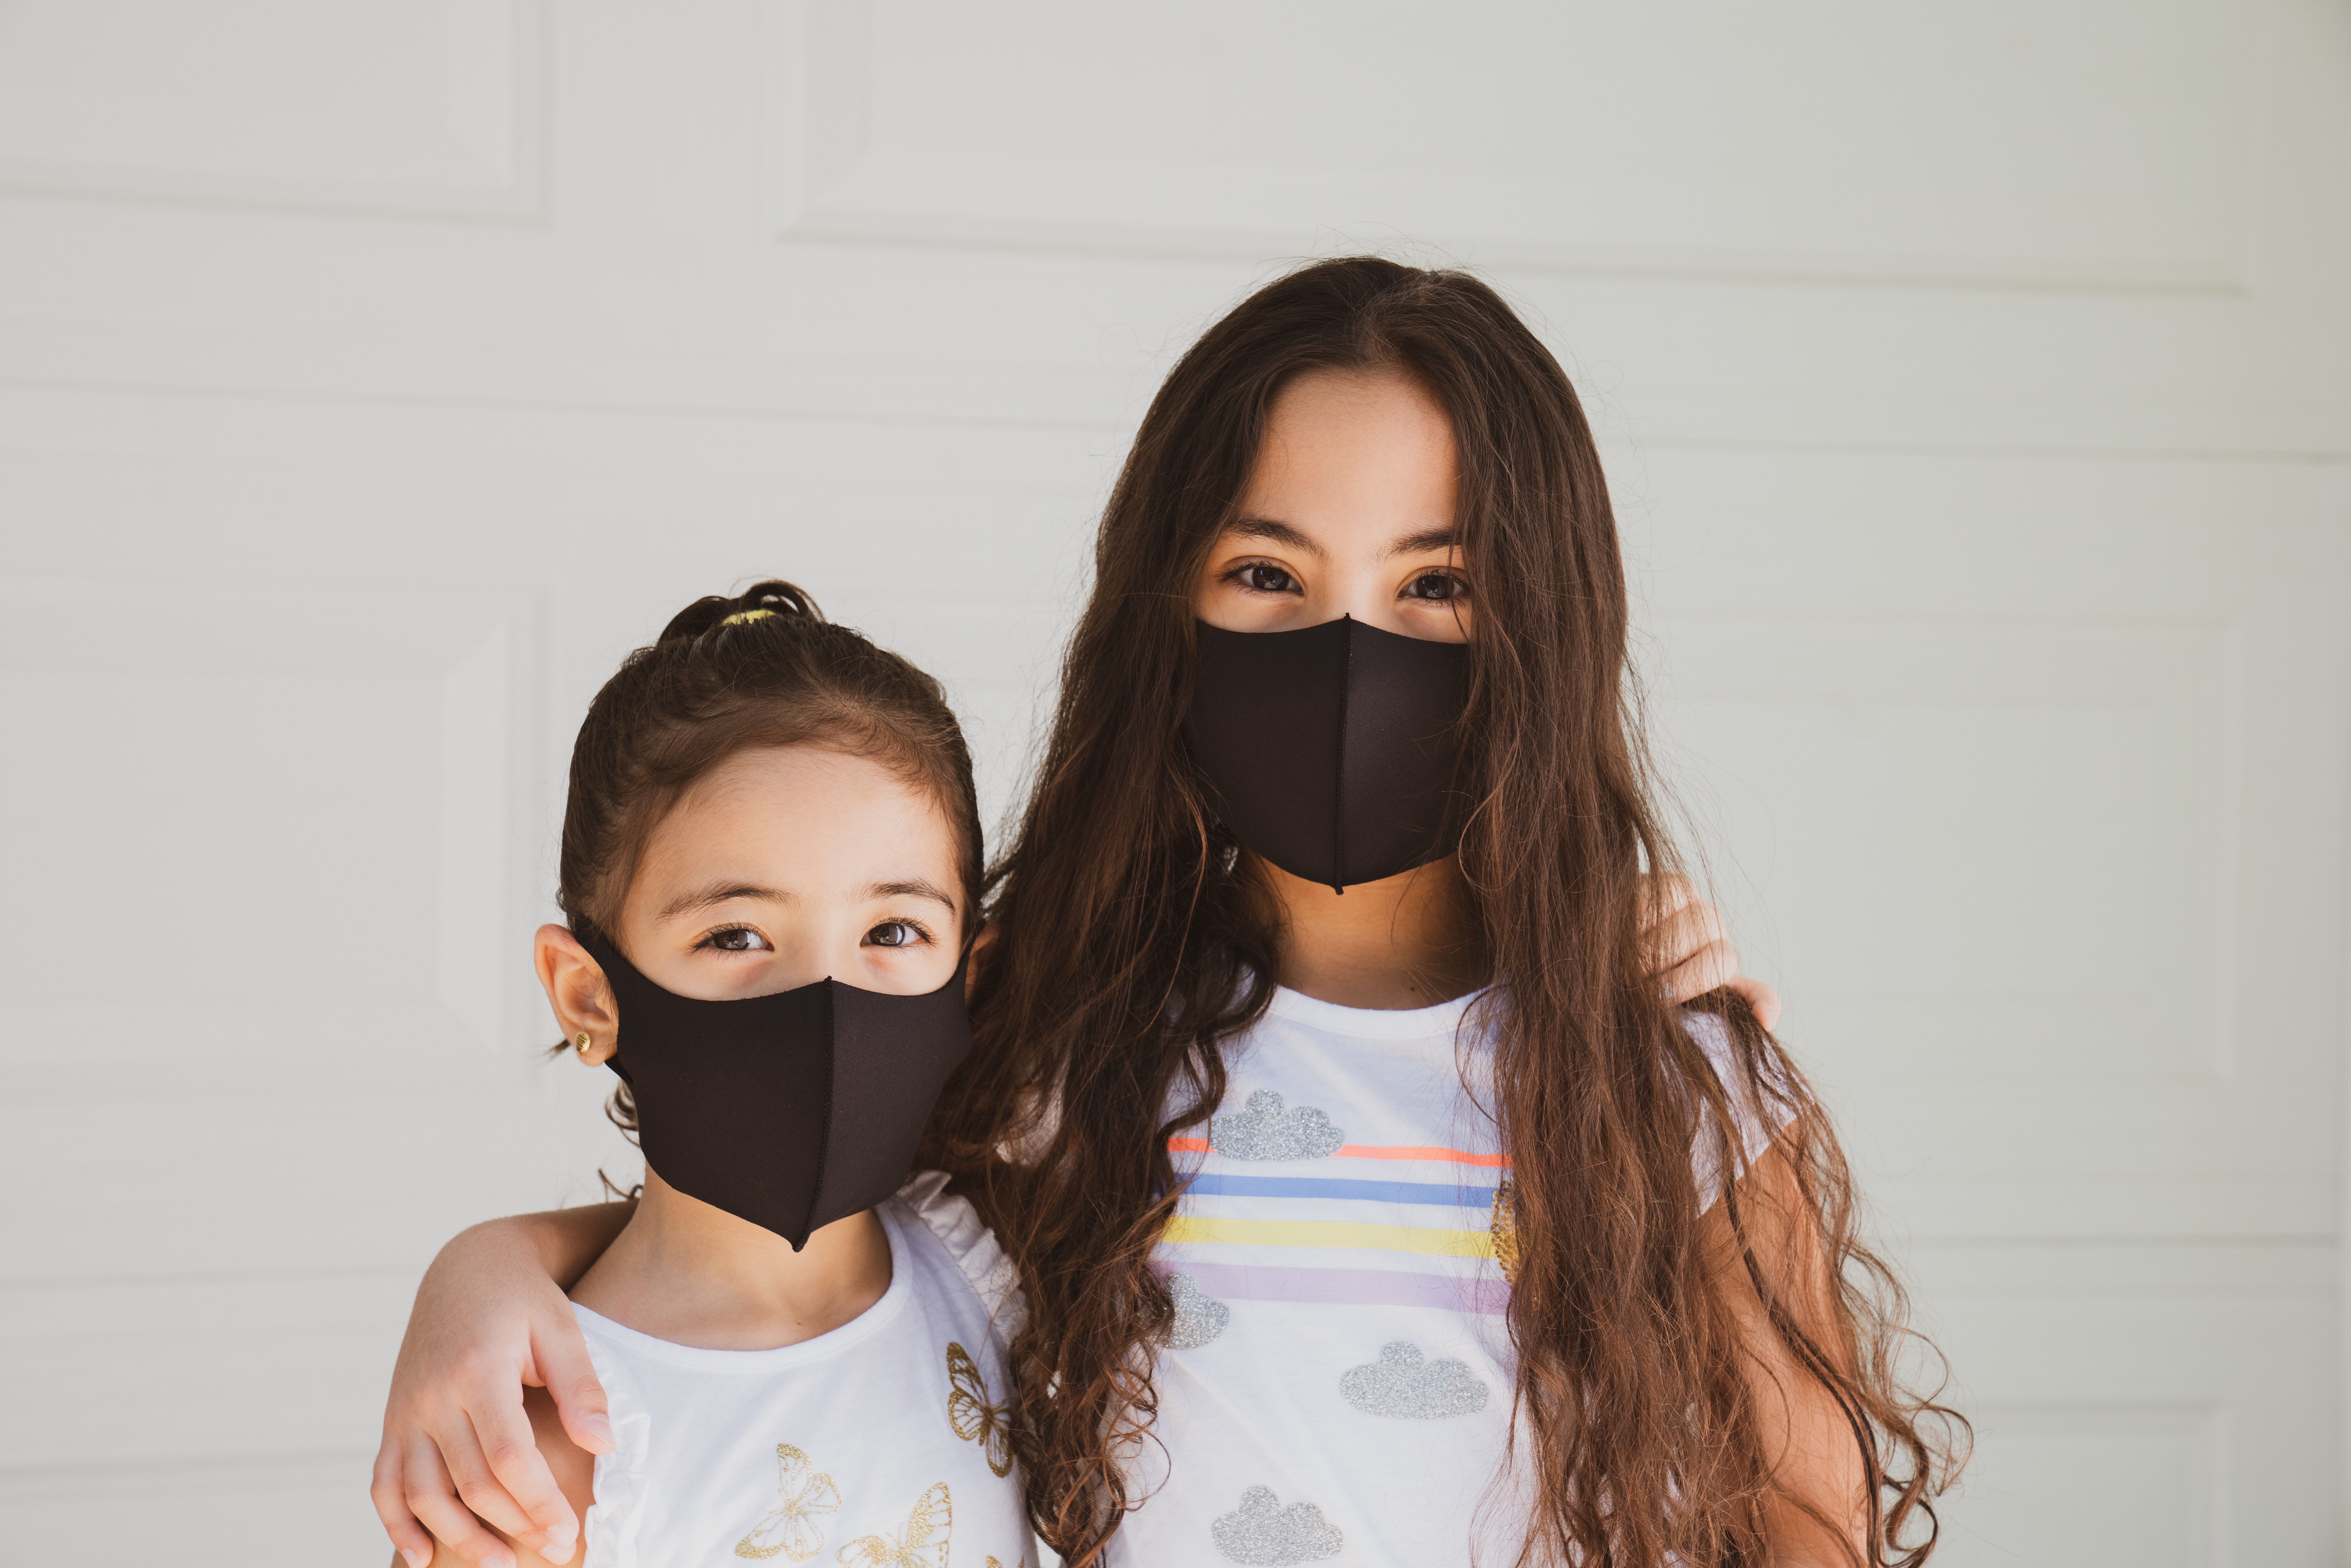 JAMA Article Shows Dangers of Mask Wearing for Kids